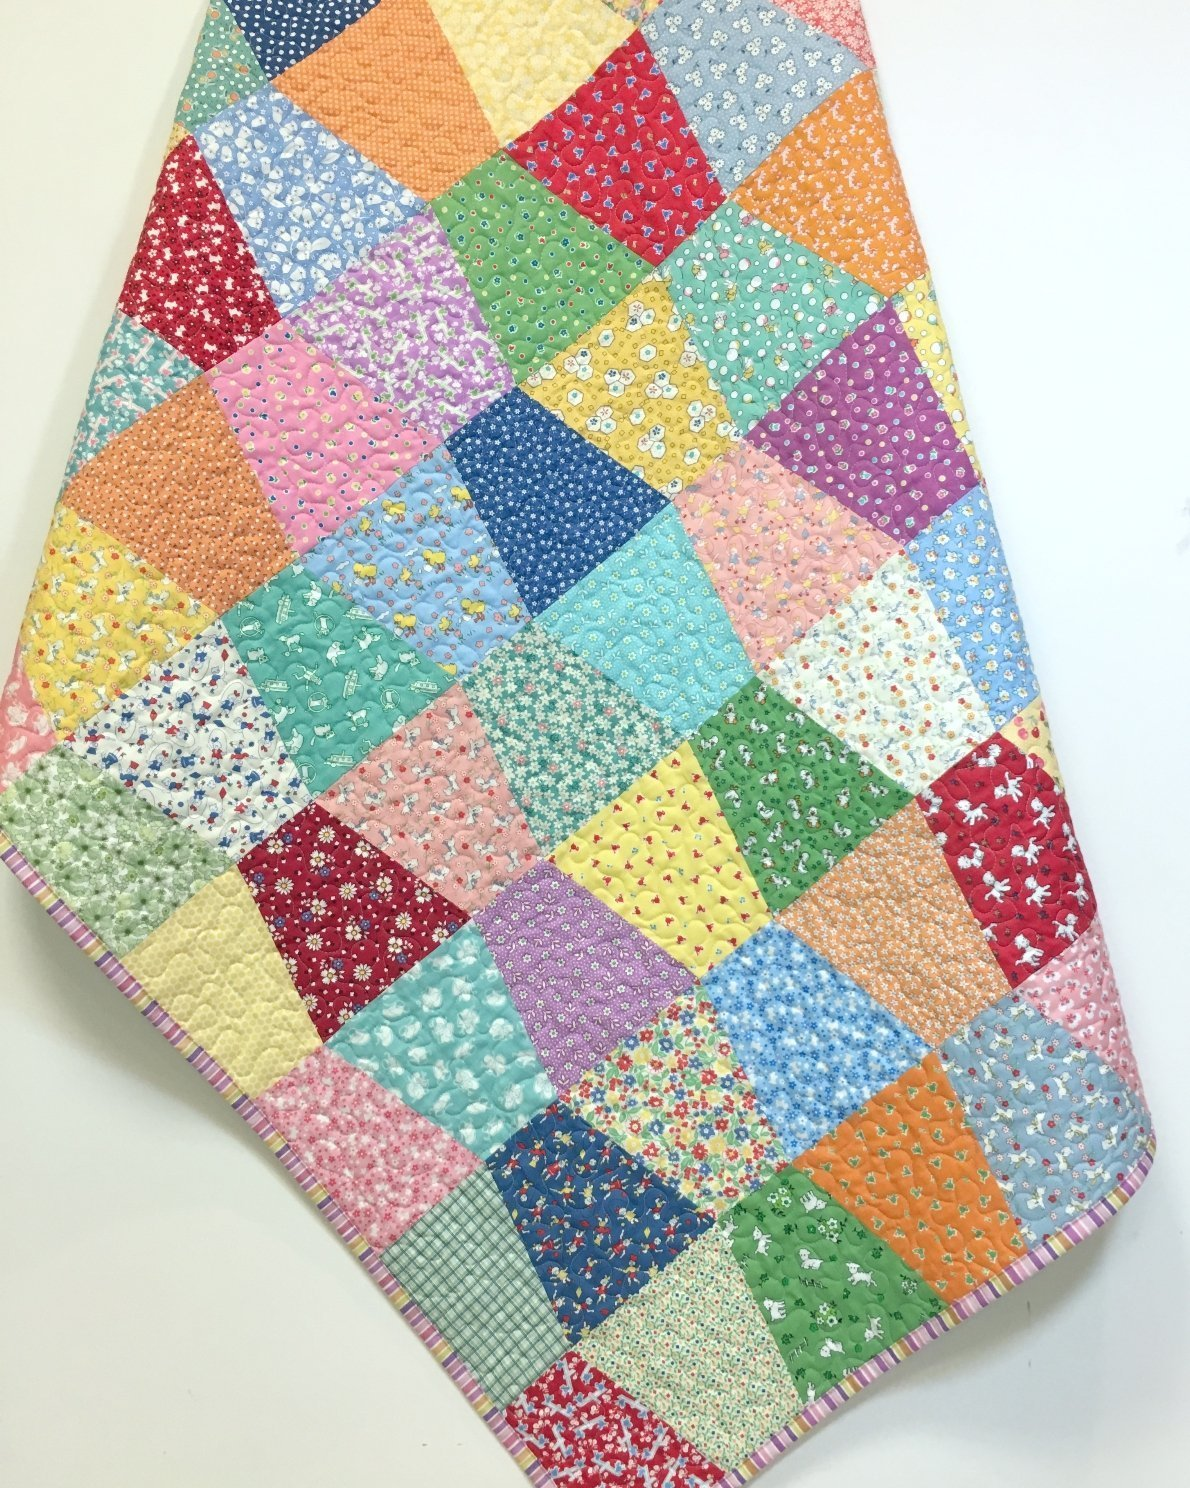 Baby Girl Quilt 1930's reproduction prints Scrappy Old Fashioned Tumbler Crib Nursery Bedding